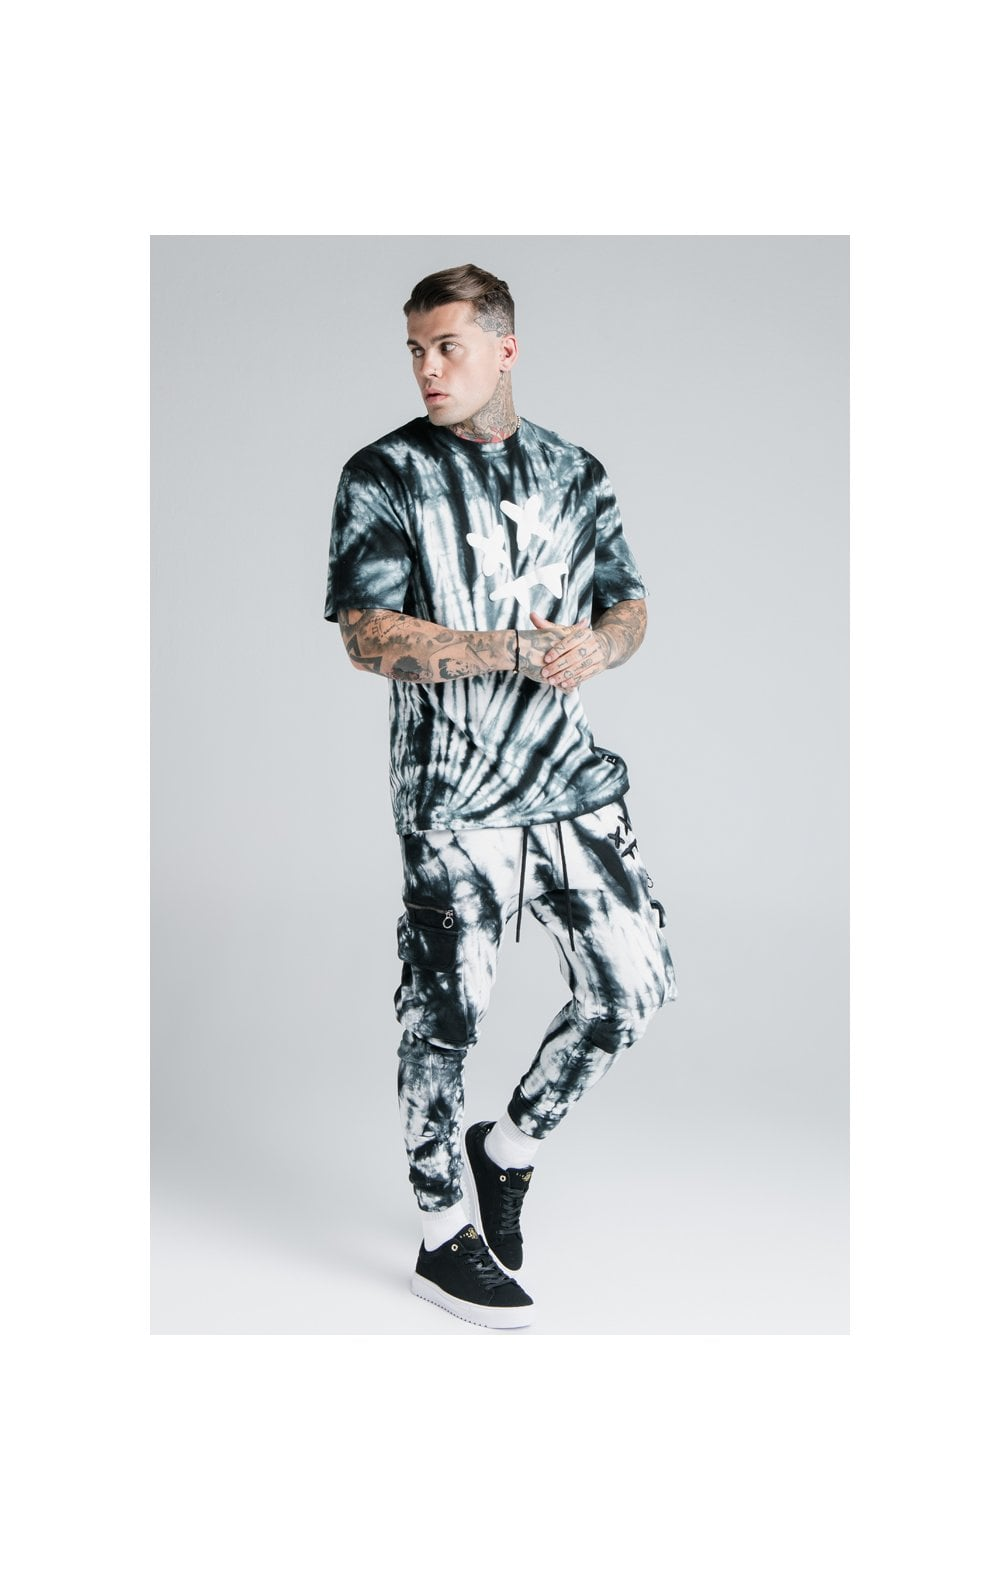 Load image into Gallery viewer, SikSilk X Steve Aoki S/S Oversize Essential Tee – Black & White Tie Dye (6)